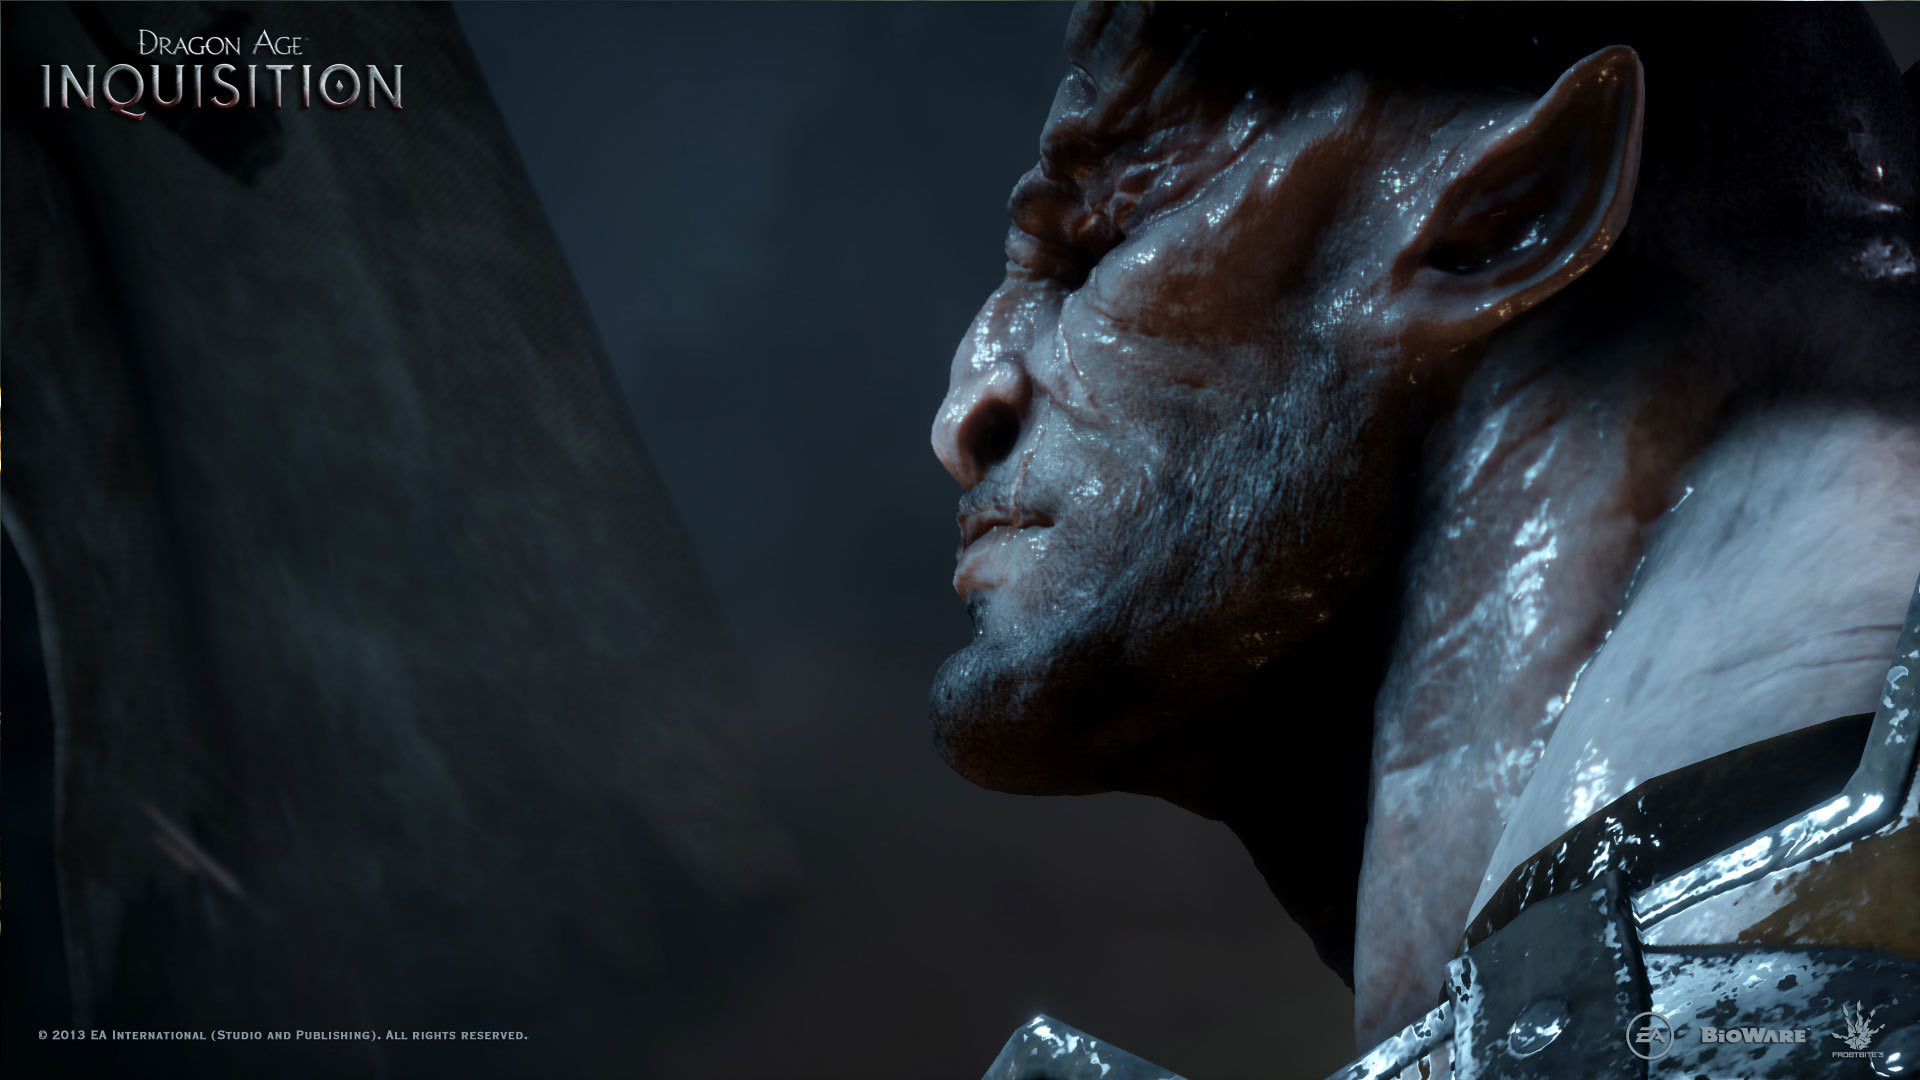 Dragon Age Inquisition: the demon wallpapers and images – wallpapers .